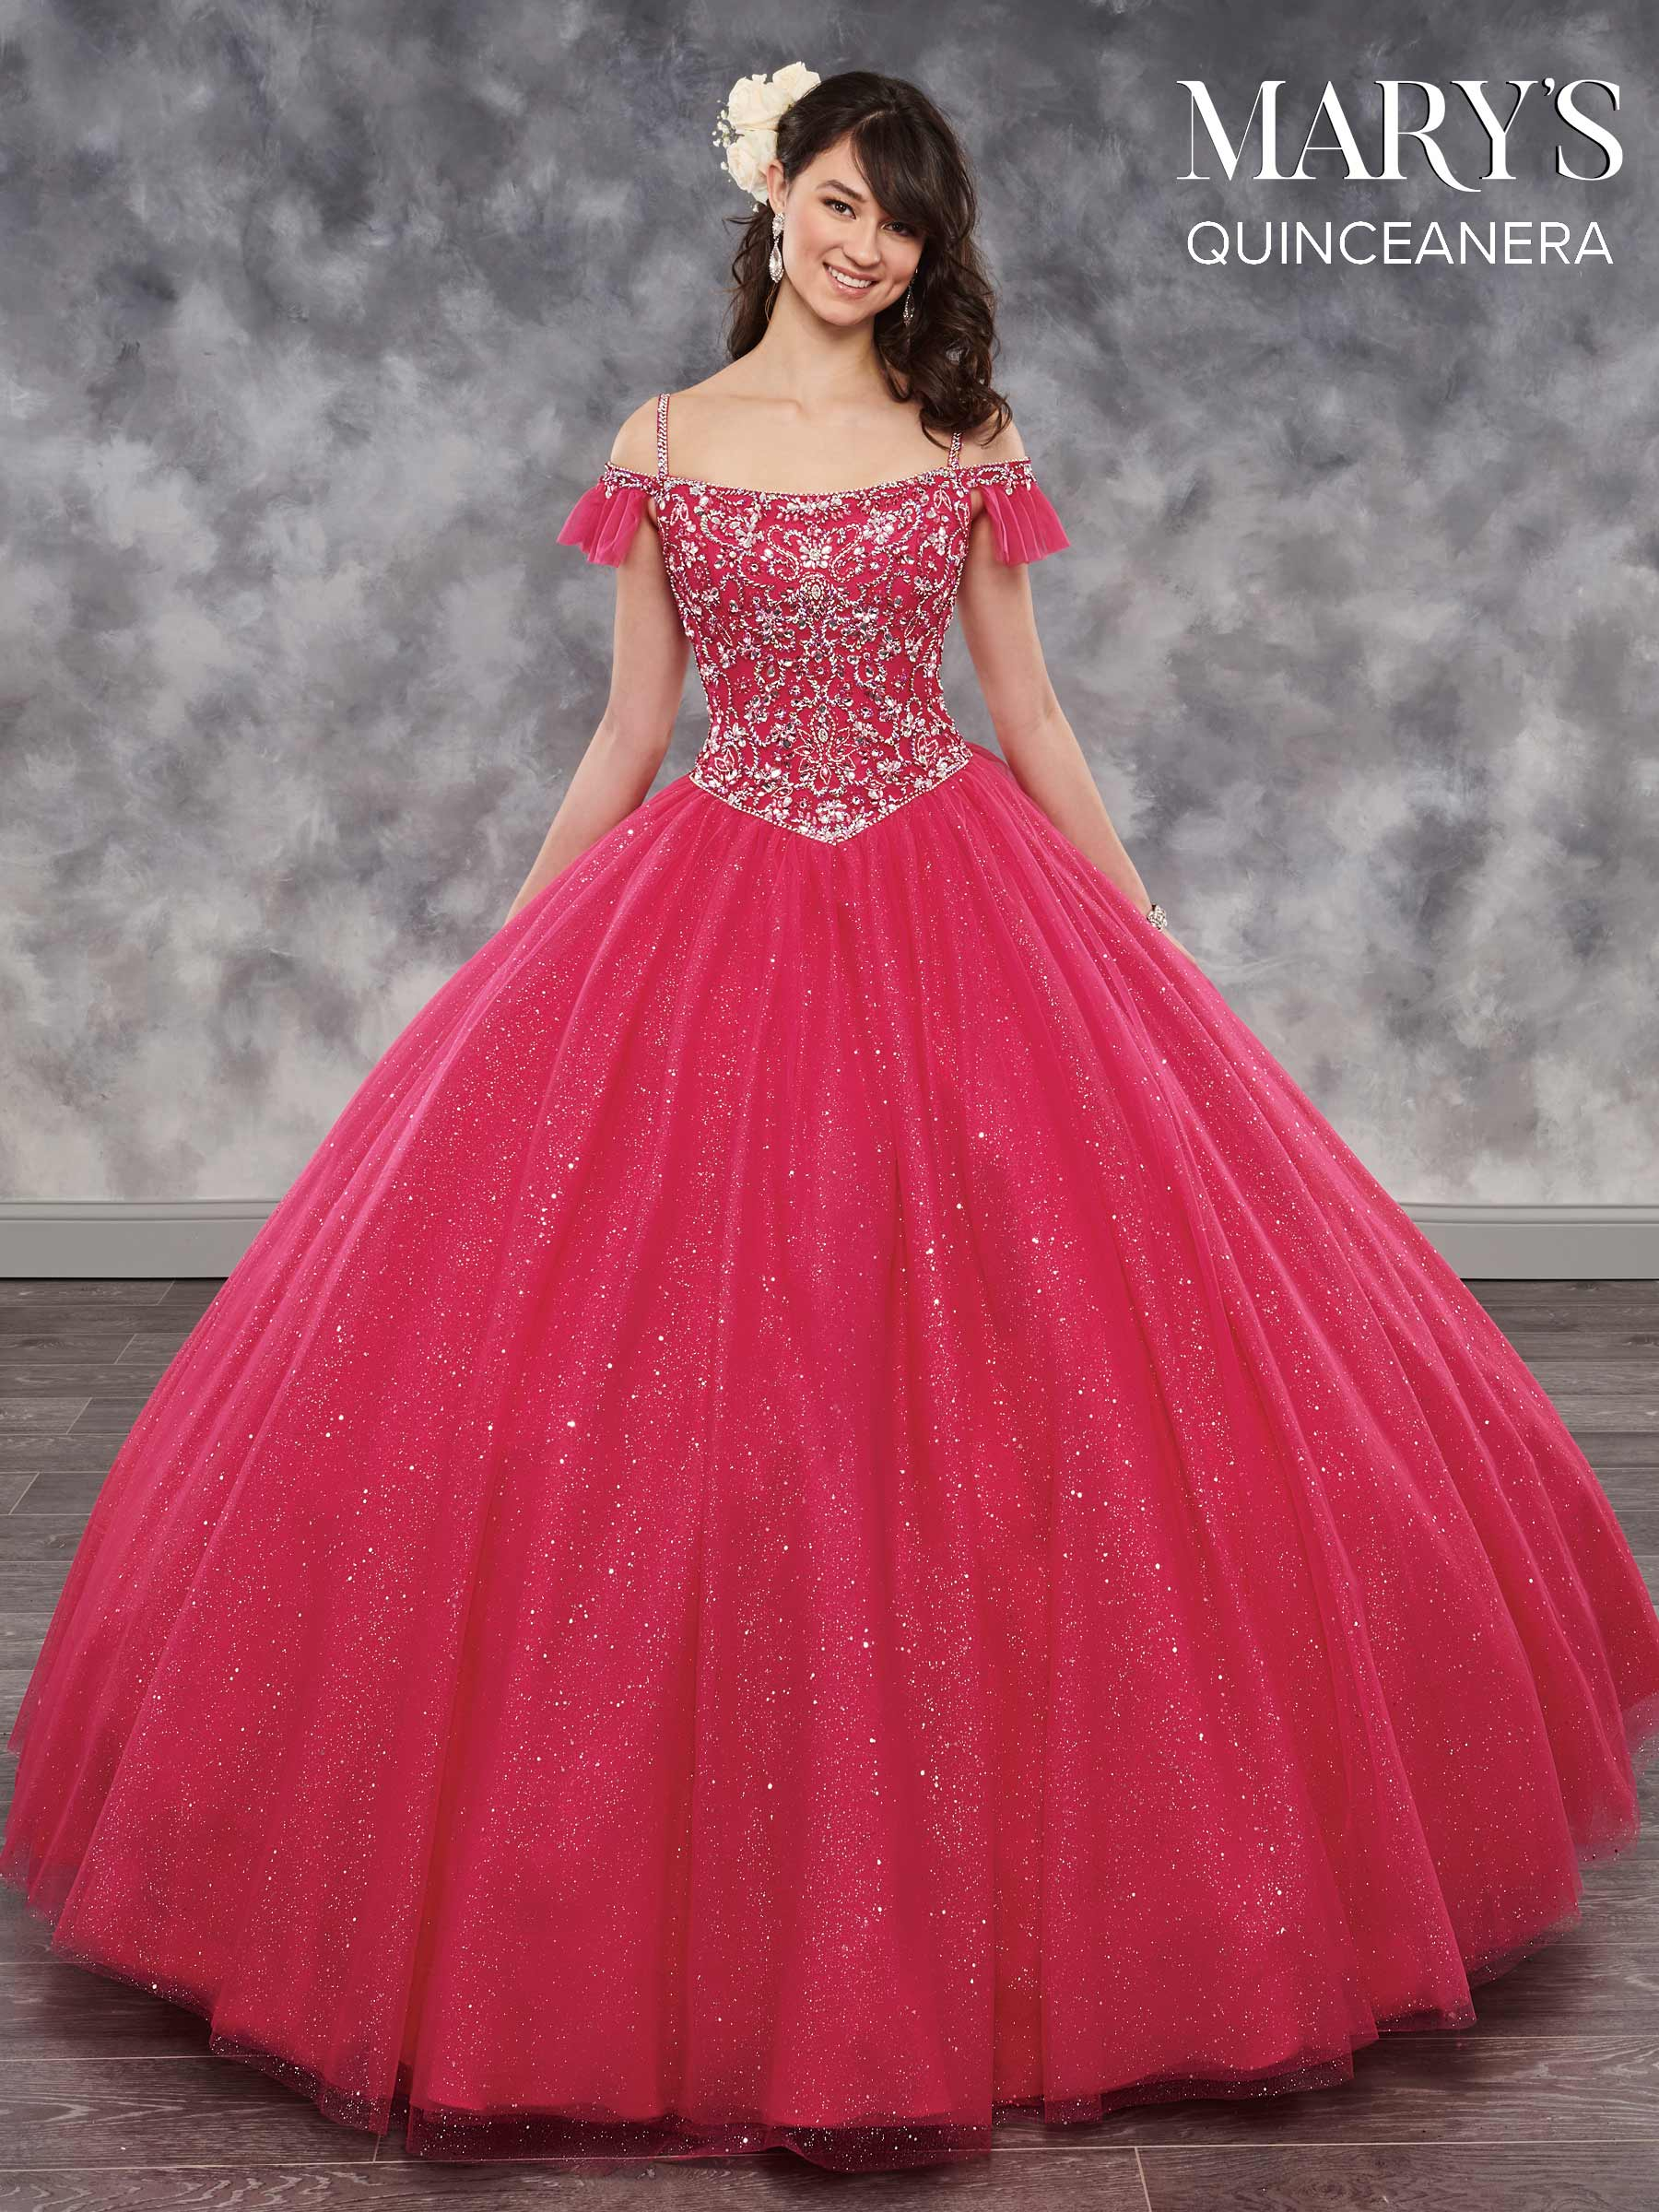 Marys Quinceanera Dresses | Mary's Quinceanera | Style - MQ1017